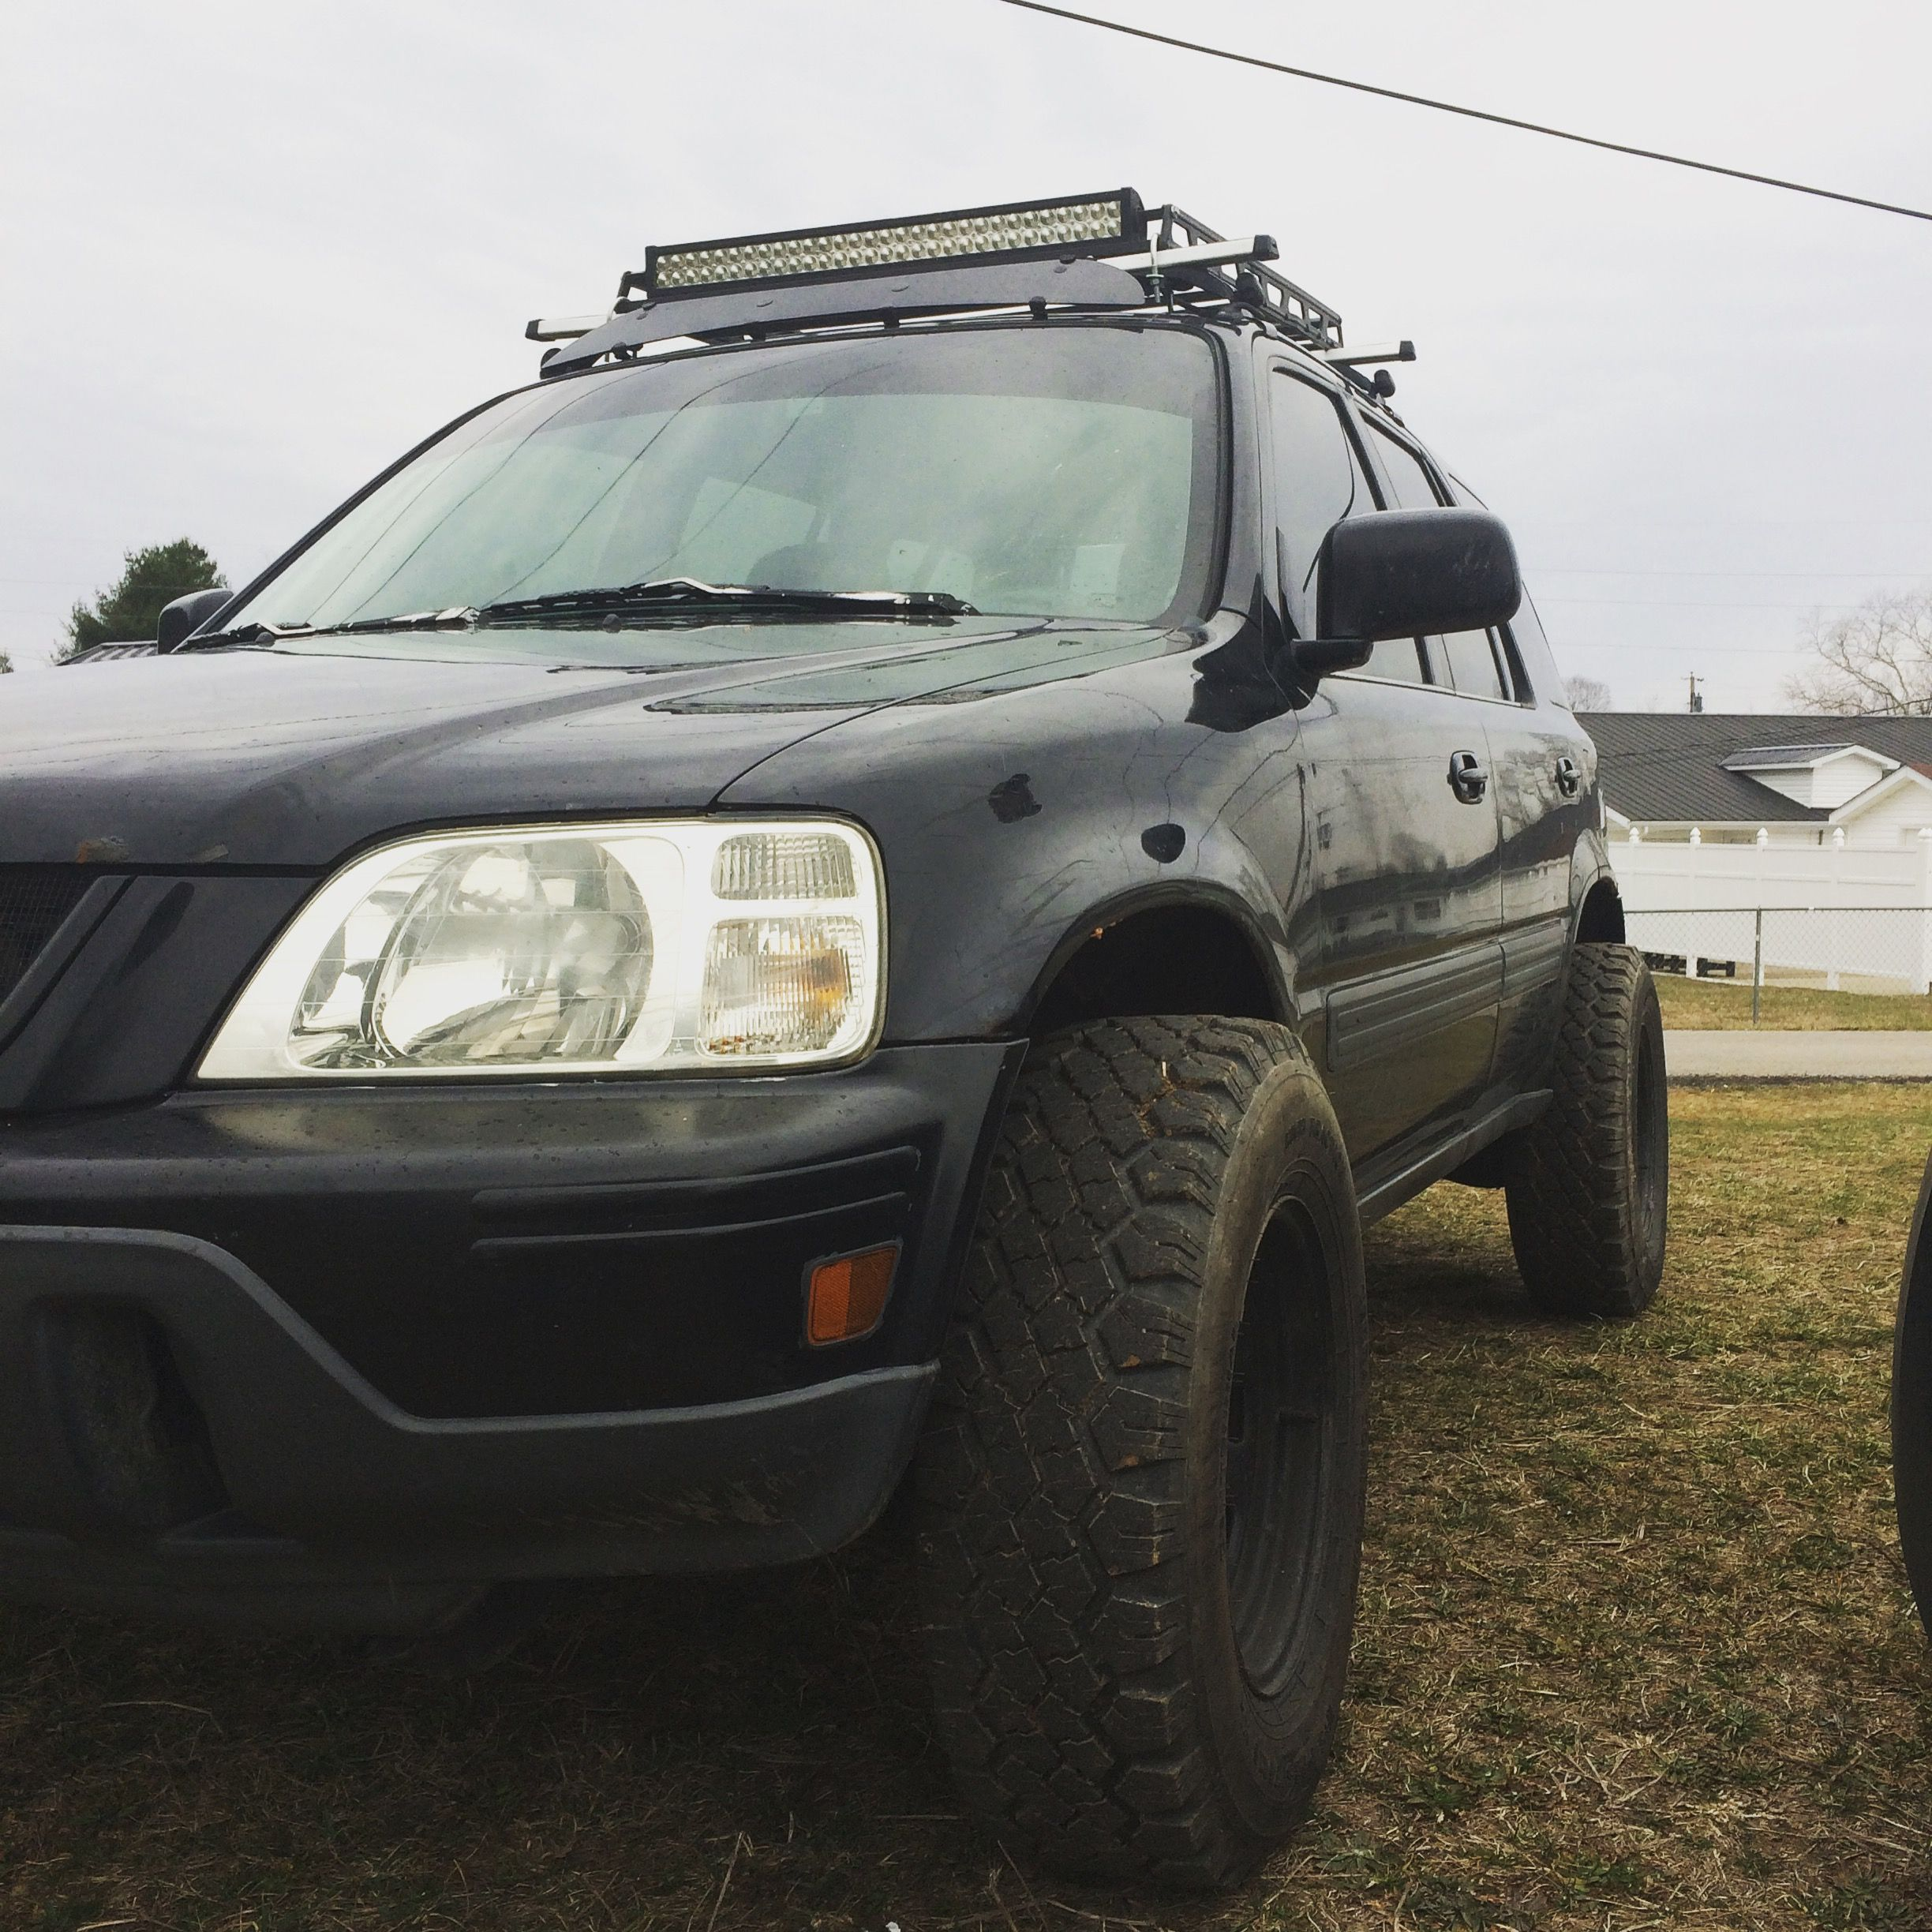 1998 Honda Crv With A Two Inch Lift And One Inch Wheel Spacers Roof Rack And Two Light Bars Honda Crv Honda Cr Honda